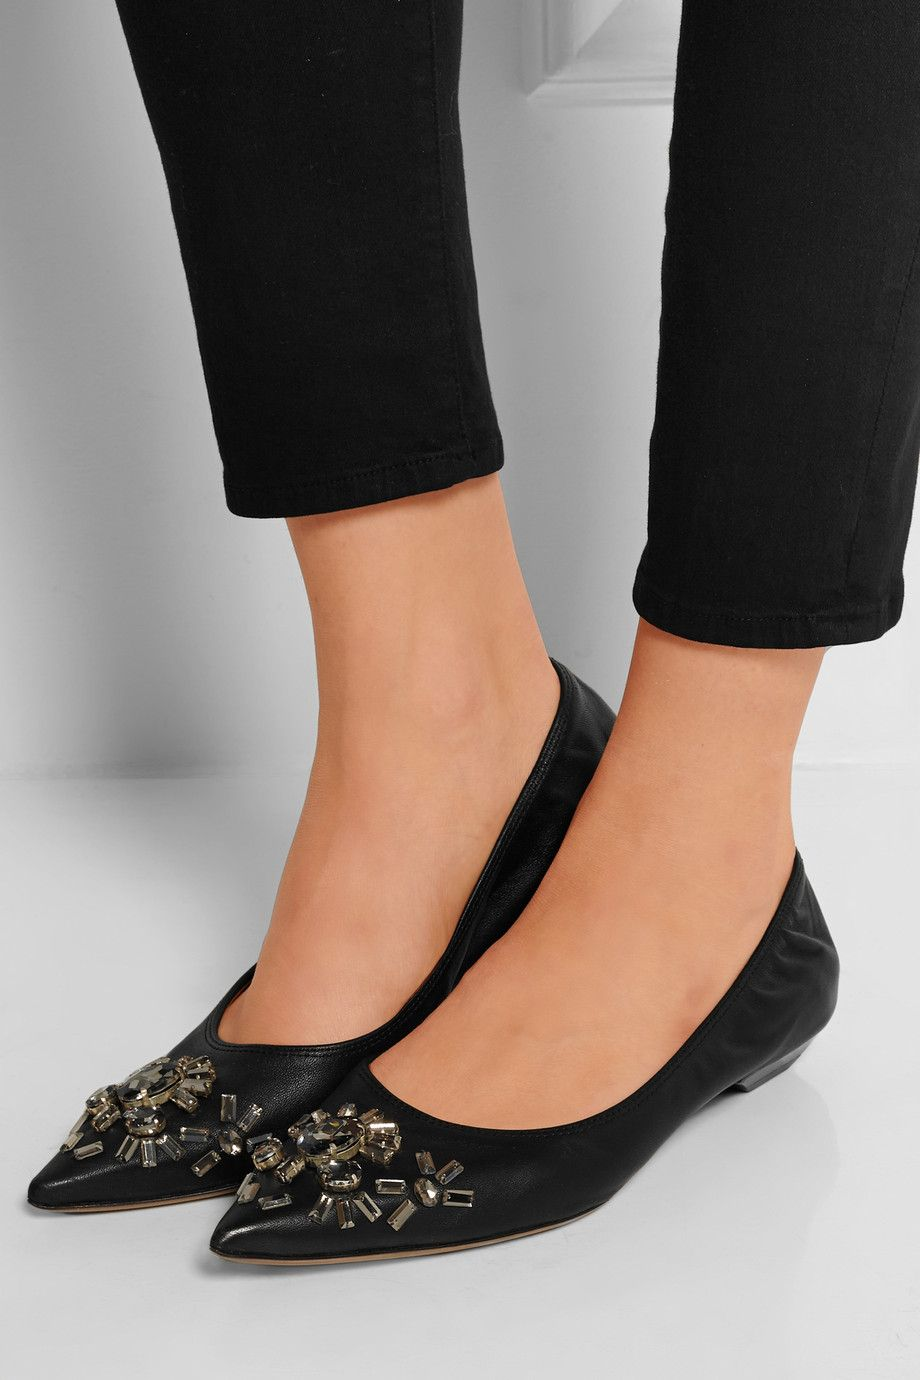 finishline cheap price classic cheap price Lanvin Embellished Satin Flats w/ Tags Qb0s1Gdl